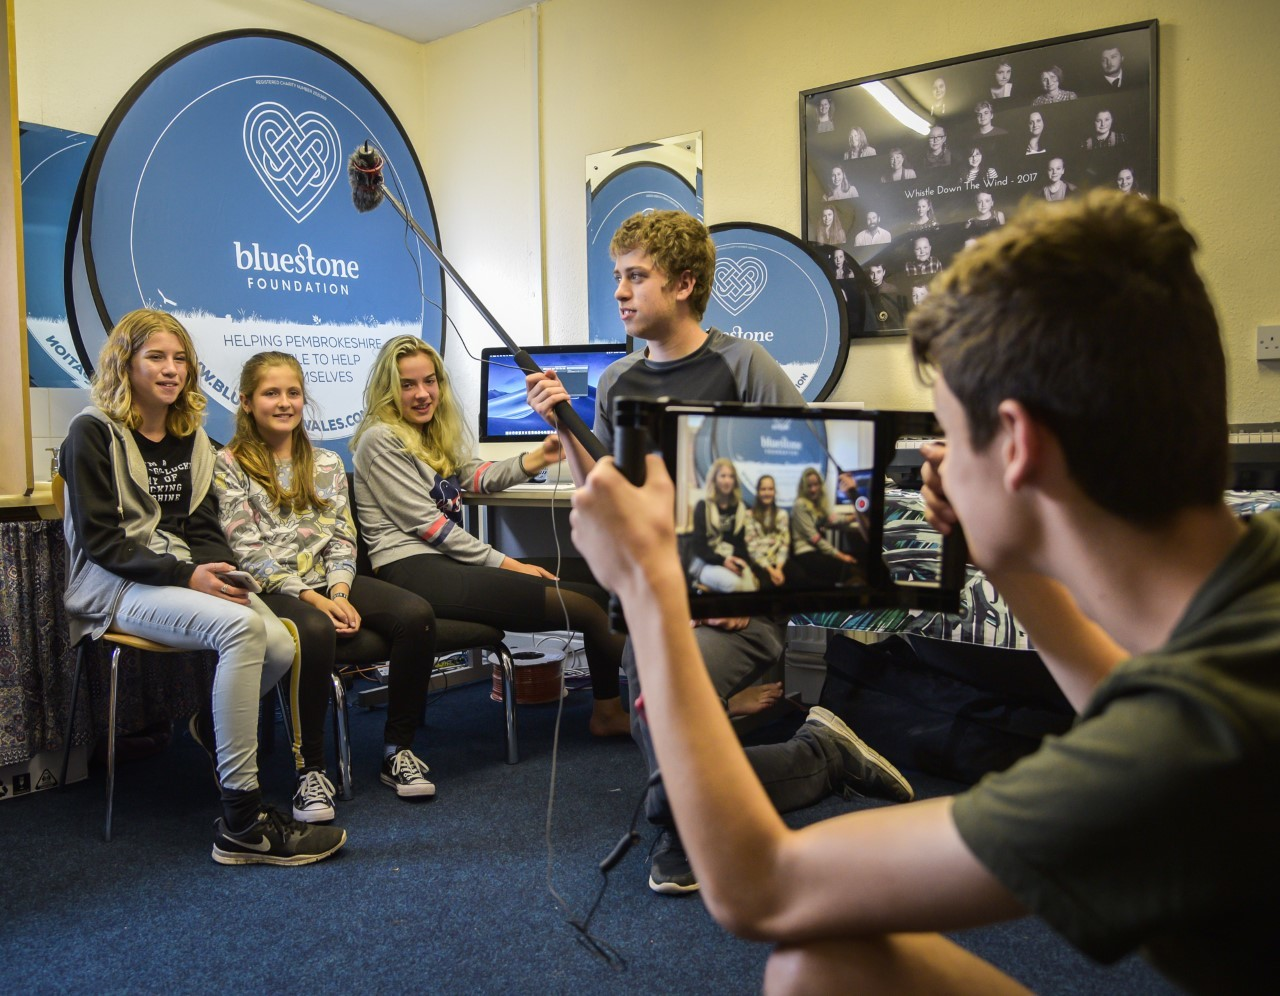 Bluestone Foundation and Ffilm Cymru funding enables Theatre Gwaun's Re:Action film making education project